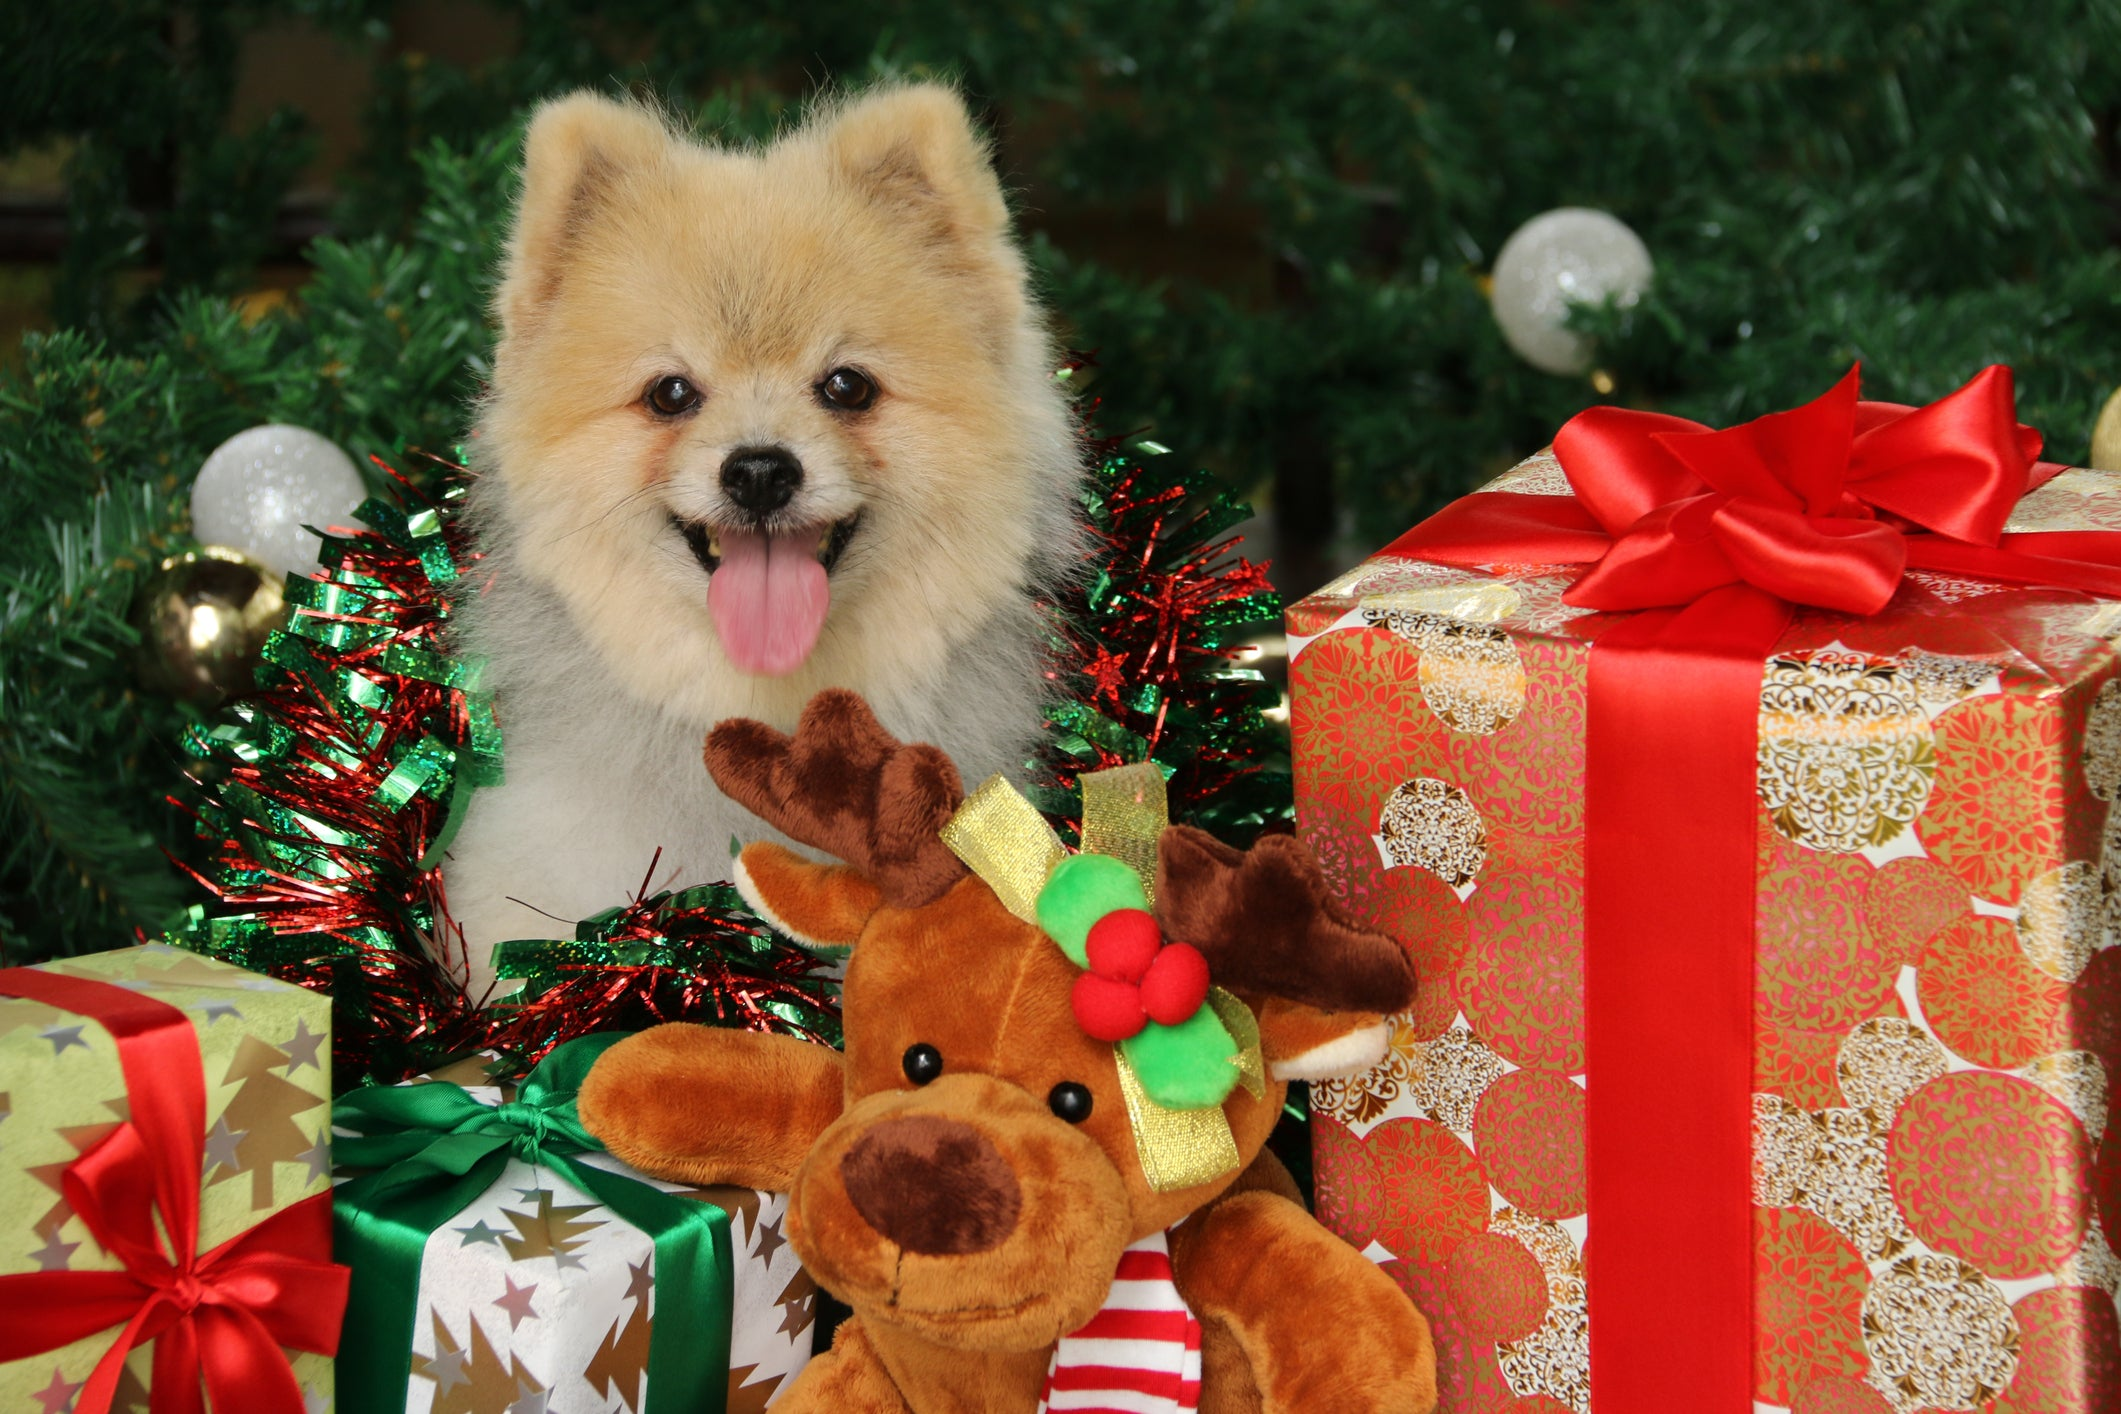 Read DoggieLawn's list of holiday gifts for your dog, and be sure to grab some dog potty grass for your pup.